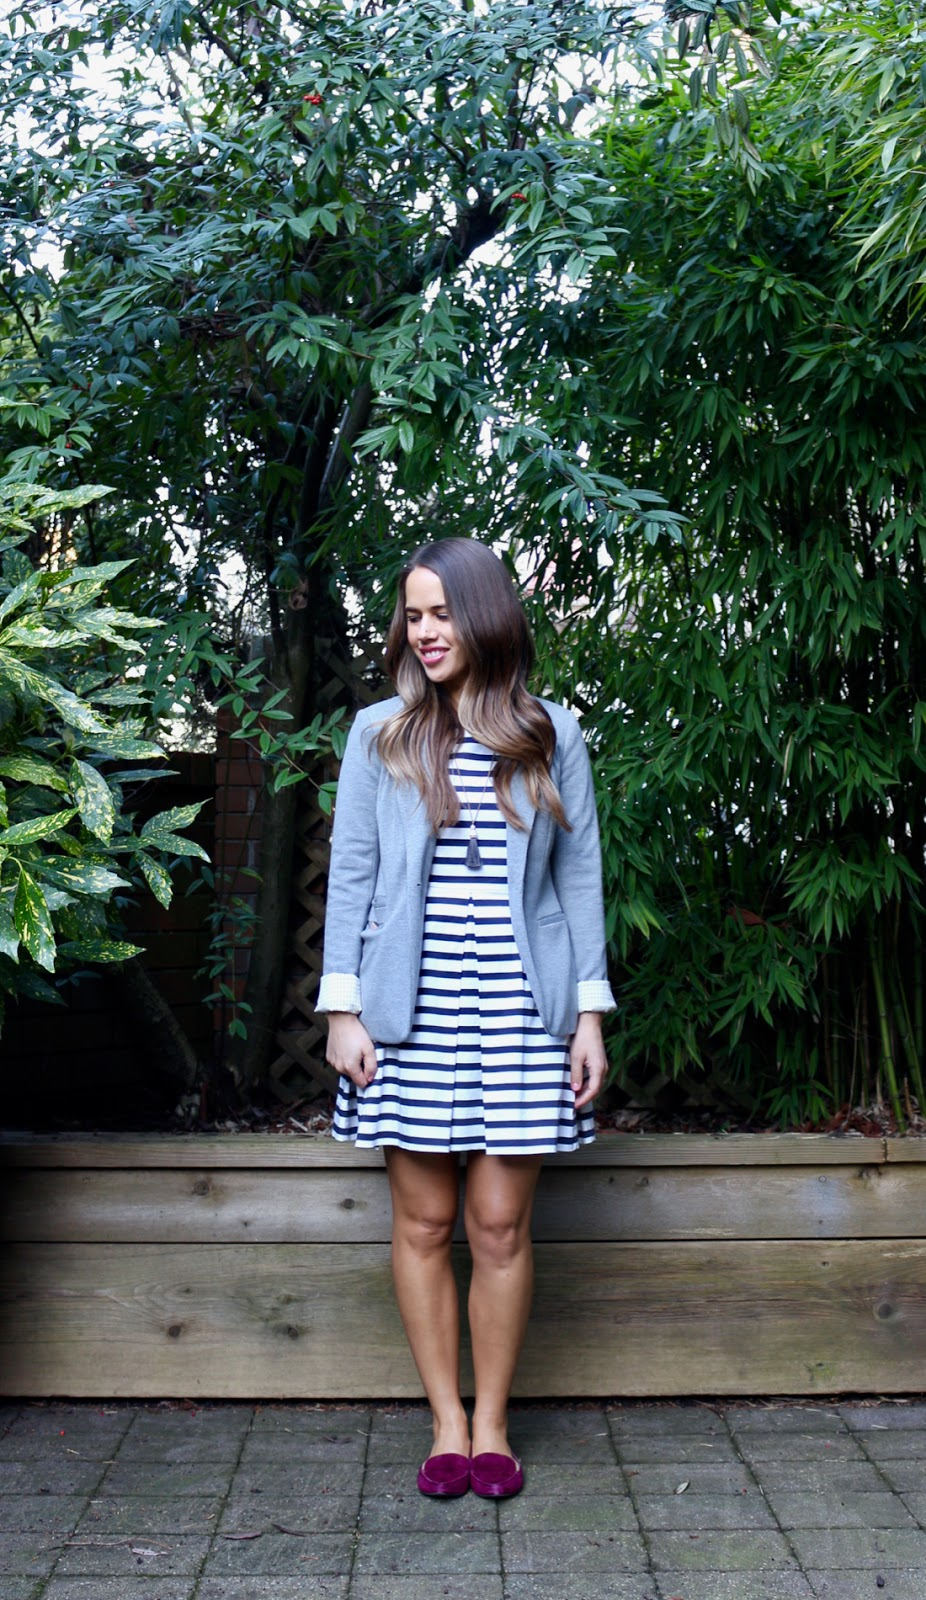 Jules in Flats - Gap Striped Fit Flare Dress with Blazer (Business Casual Spring Workwear on a Budget)